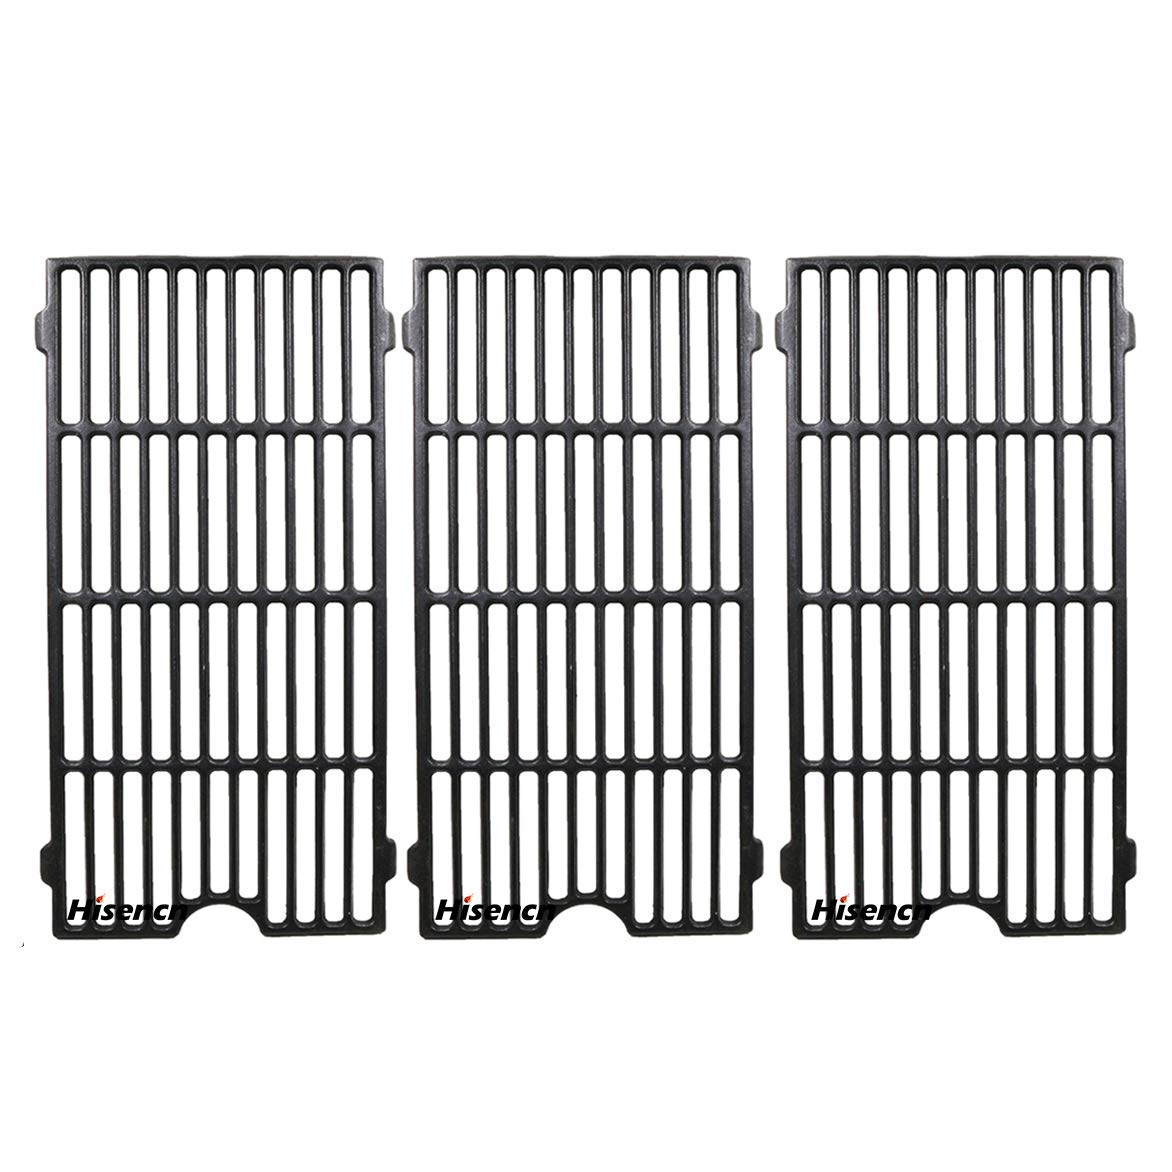 Edgemaster Cast Iron Cooking Grid, Cast Iron Cooking Grid For Perfect Flame 3019L, 3019LNG, Jenn-Air 720-0709, 720-0720, 720-0727, 730-0709, 720-0745, 720-0745A, 720-0819